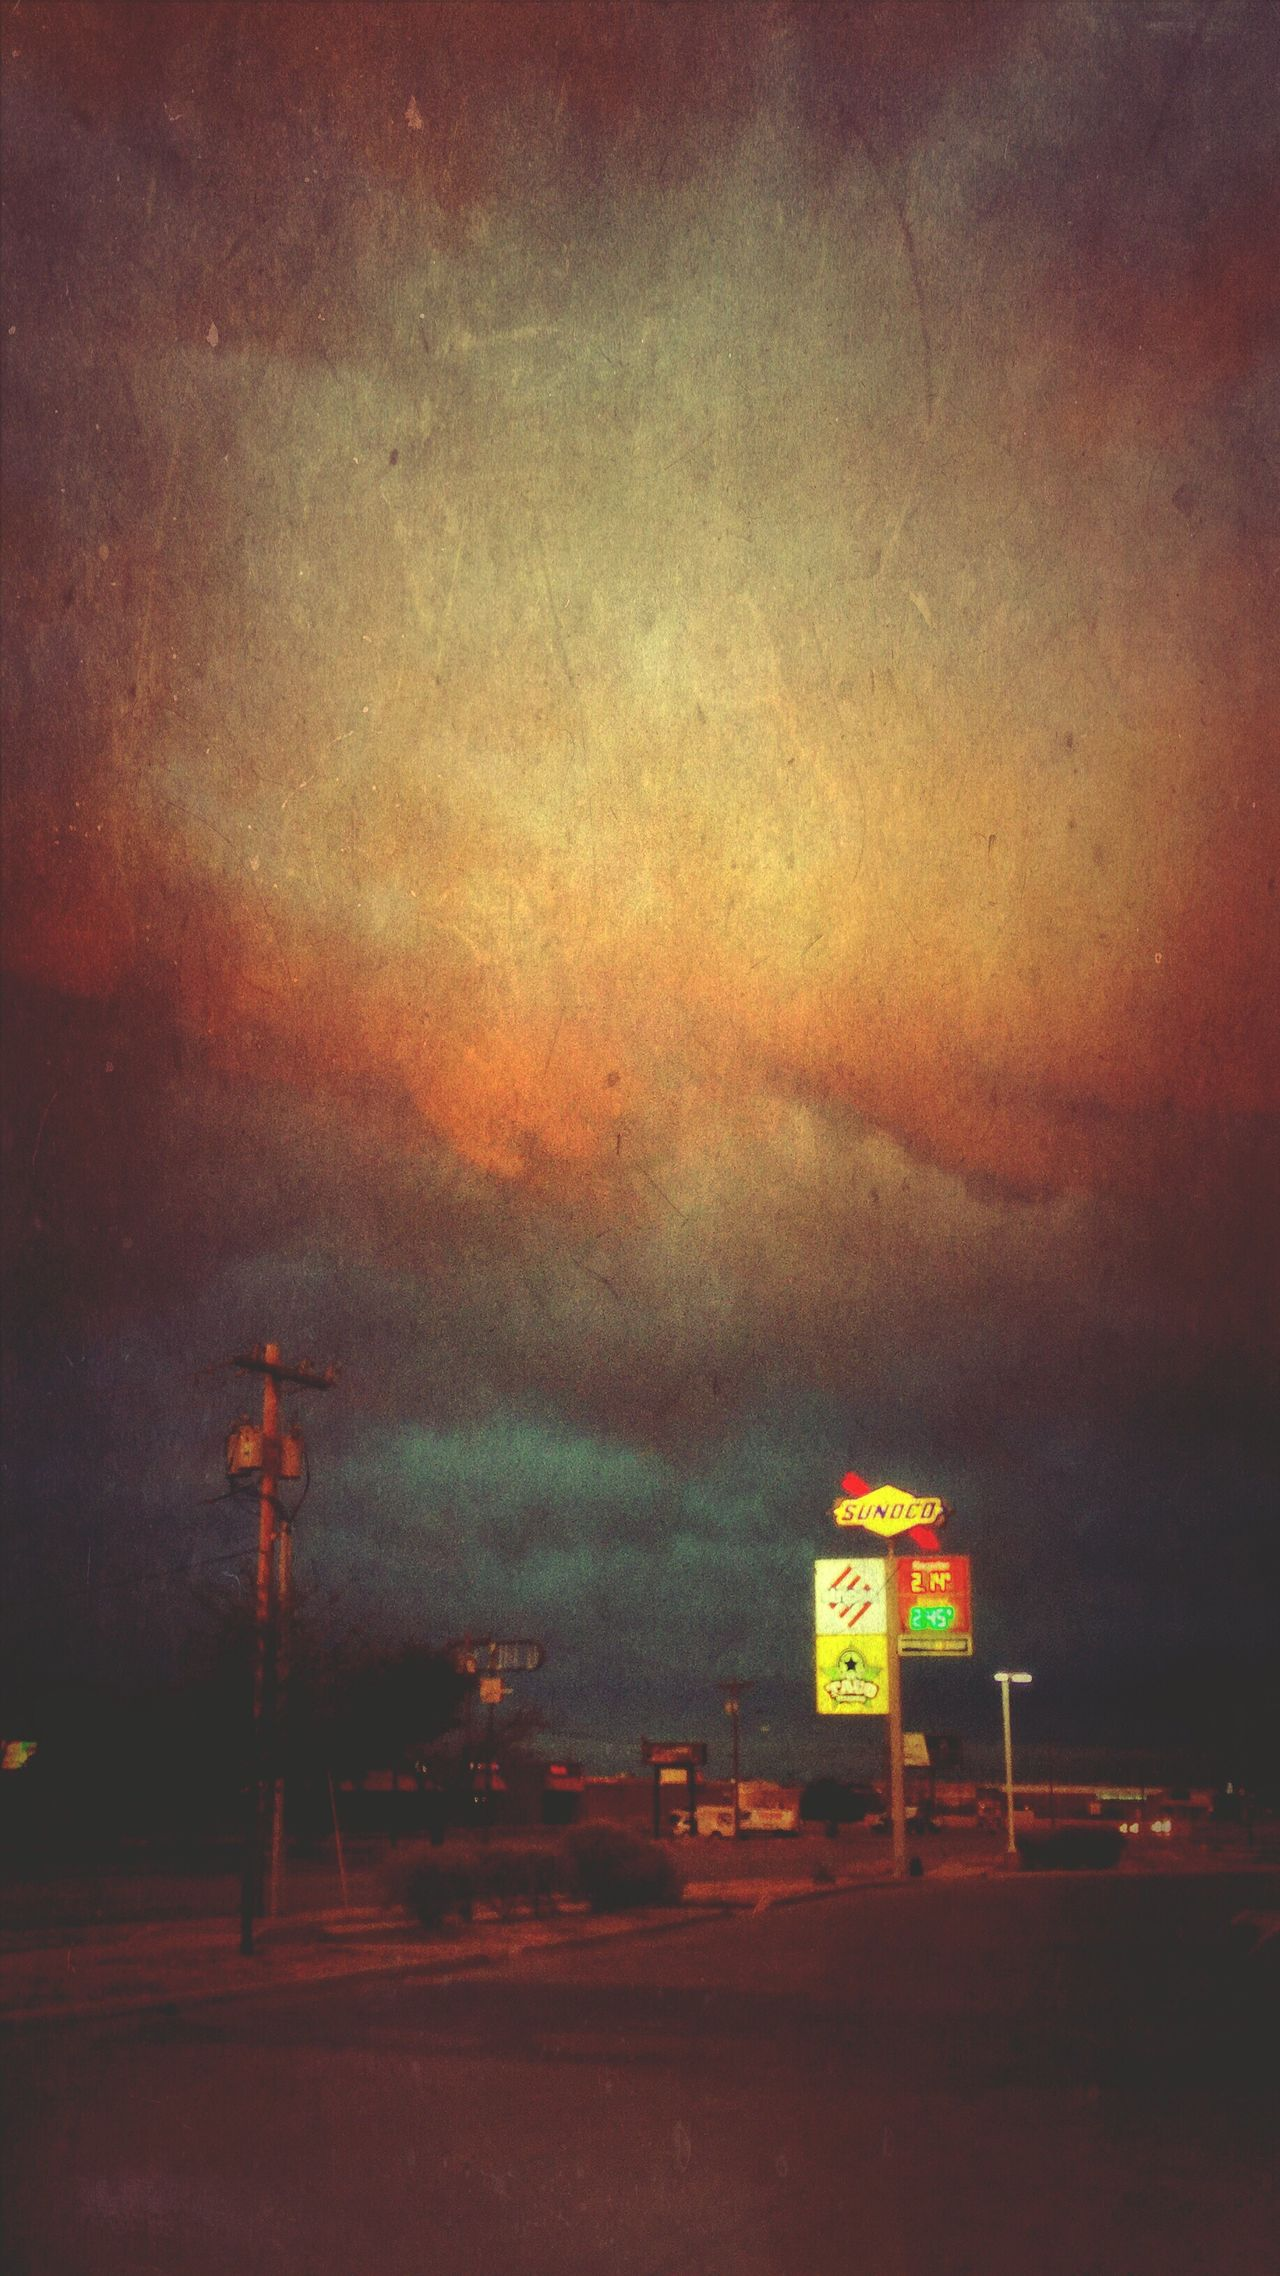 Night IPhoneography Sunset Cloud - Sky Nature Neon Sign Sky Clouds Vintage Landscape